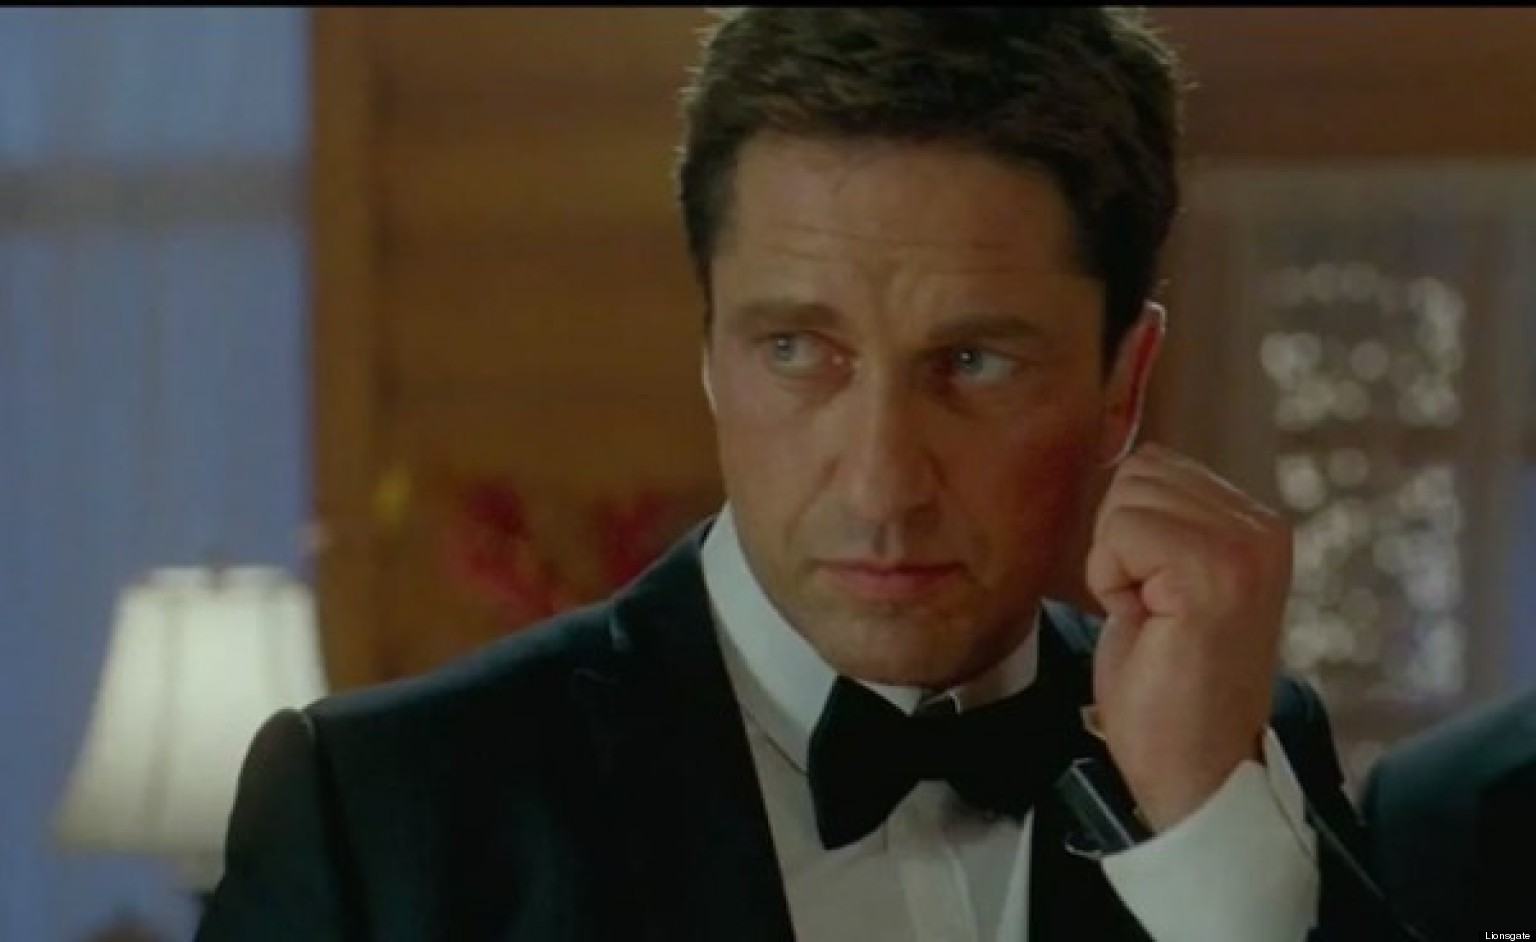 'Olympus Has Fallen' Star Gerard Butler: 'I Train Harder